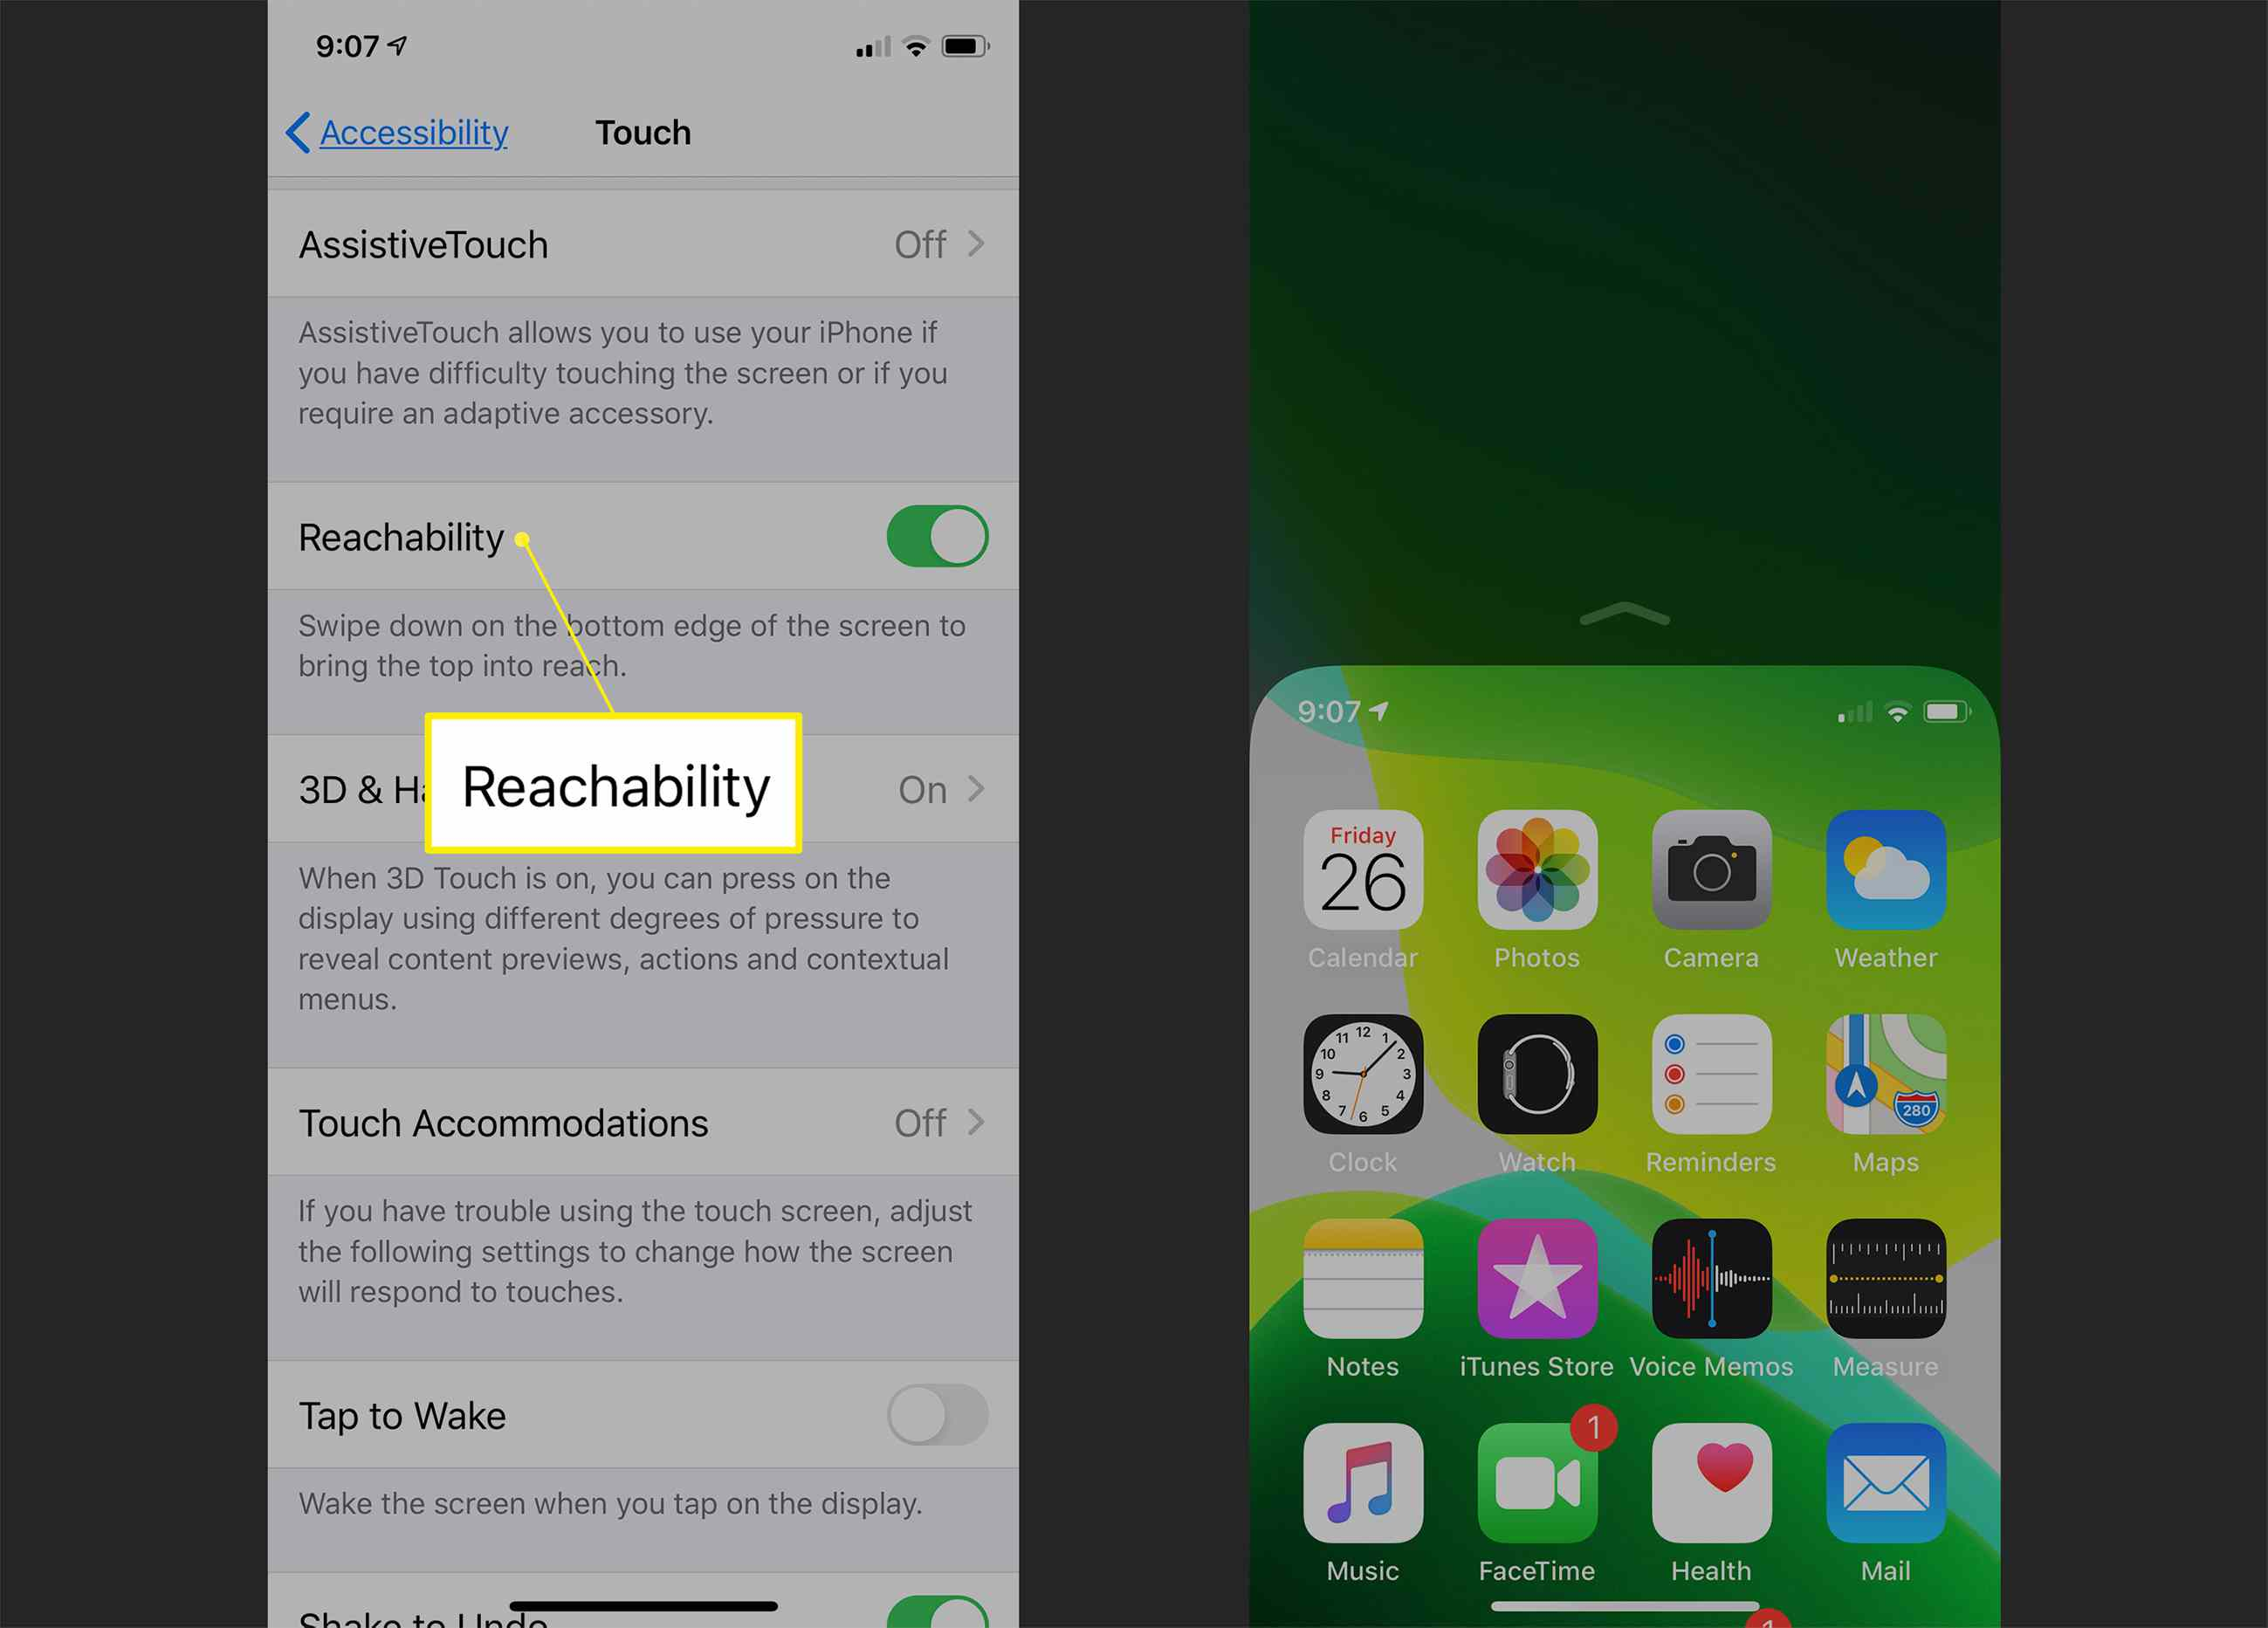 iPhone Touch settings including Reachability